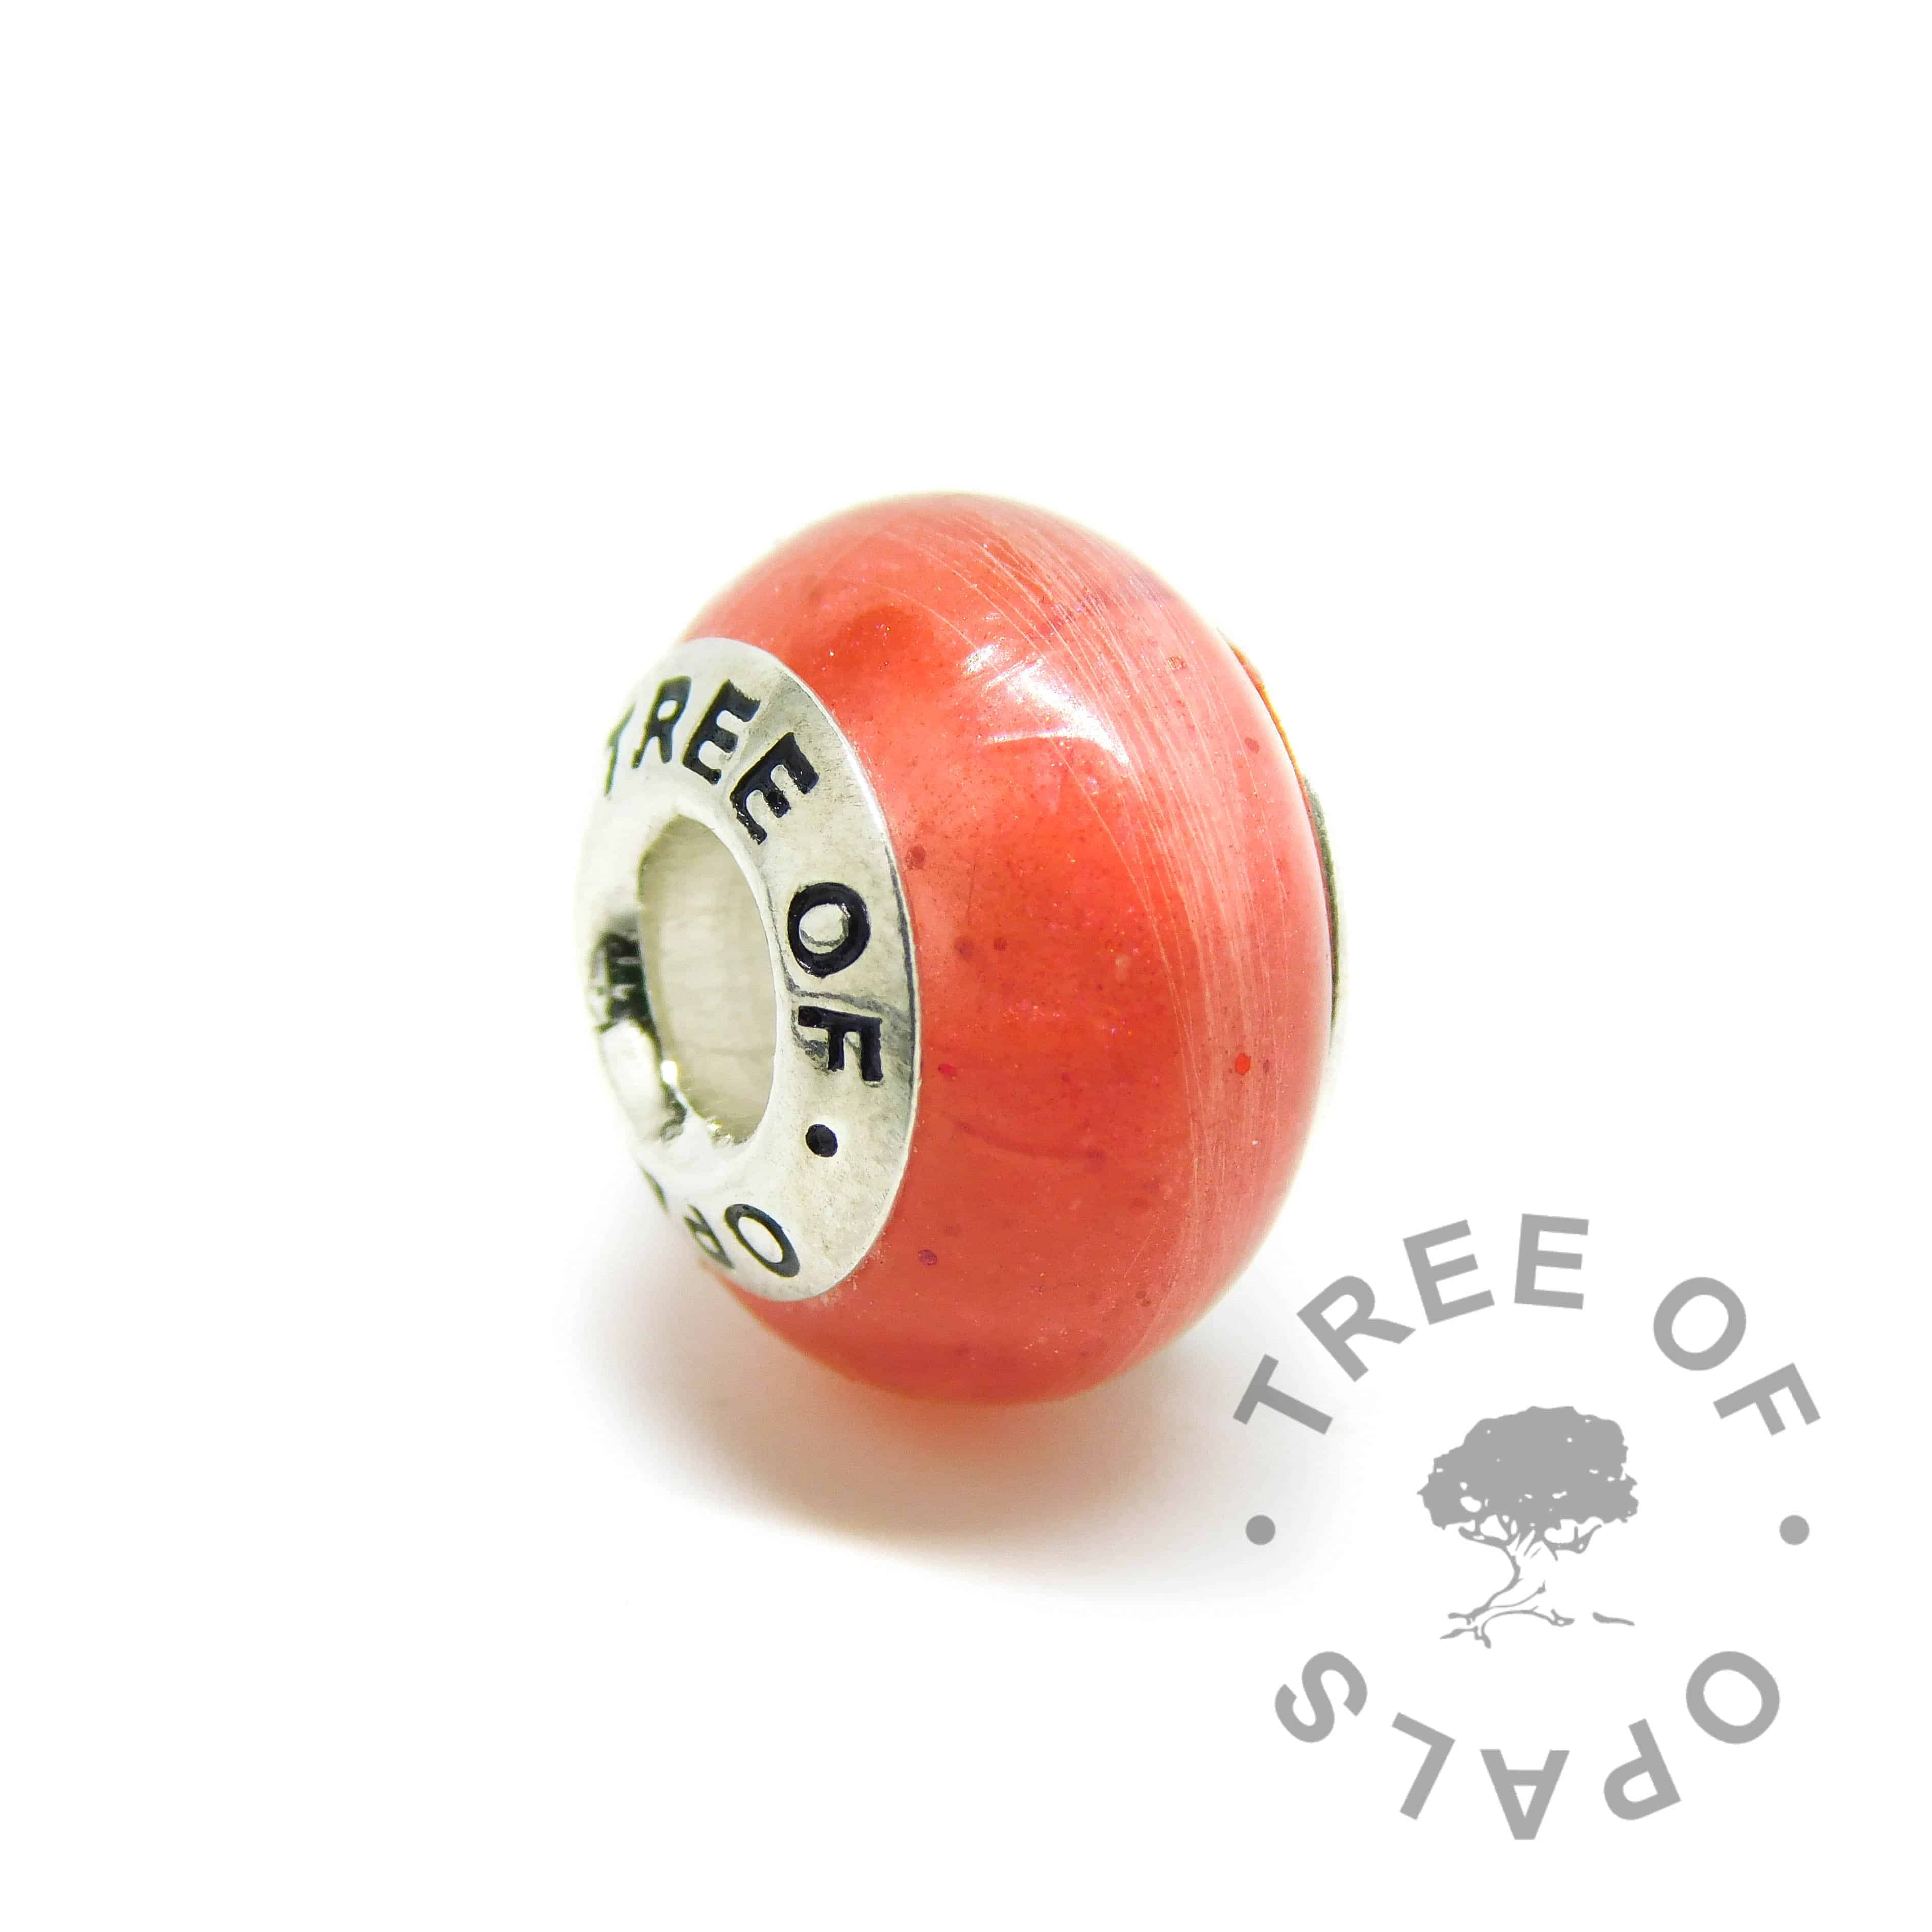 Lock of hair charm. Naturally white or very light blonde hair with dragon's blood red resin sparkle mix, no birthstones. Charm set with Tree of Opals core. Watermarked copyright image by Tree of Opals